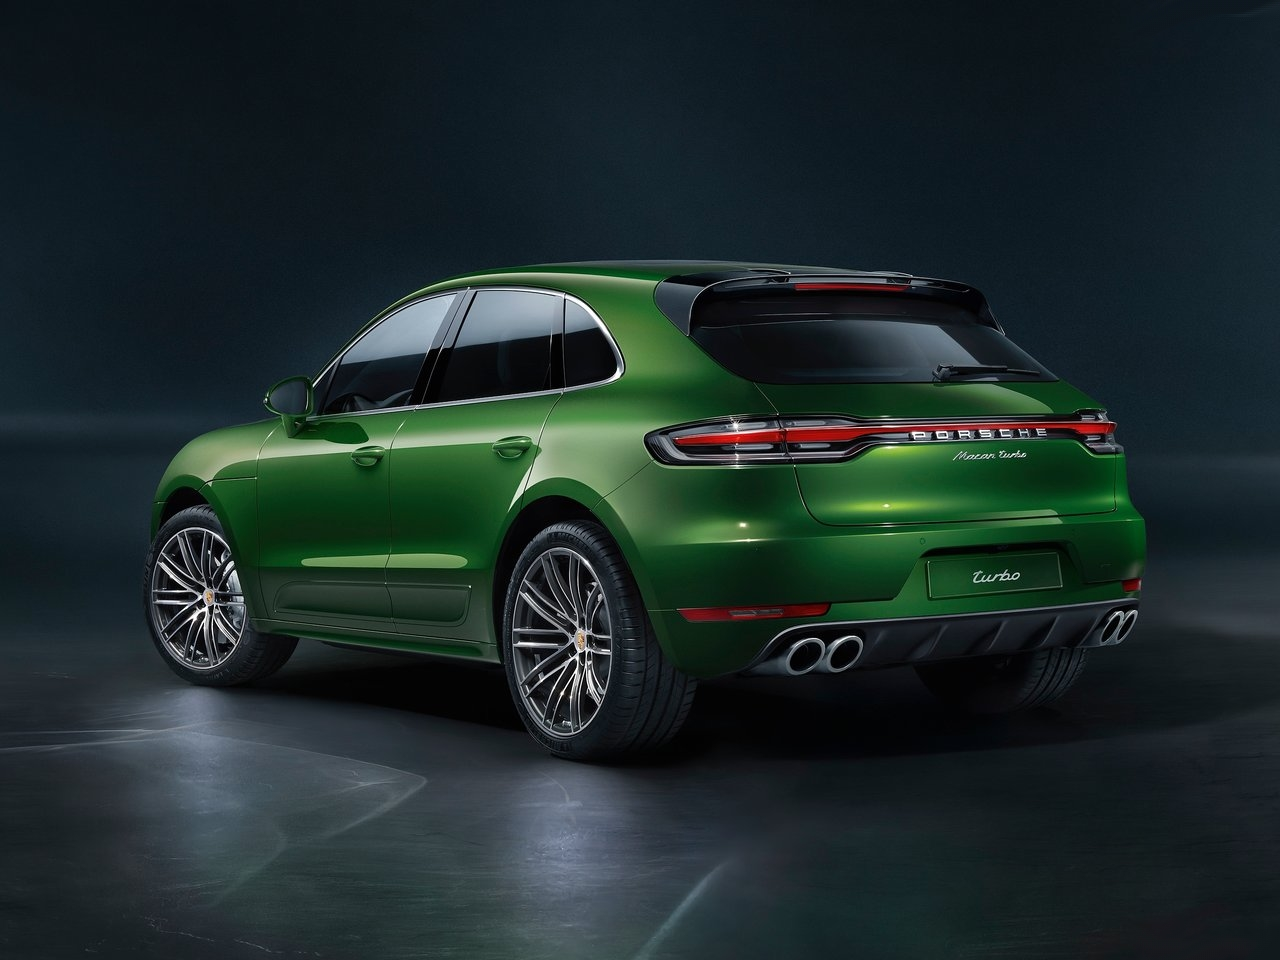 2020 Porsche Macan Turbo viewed from rear